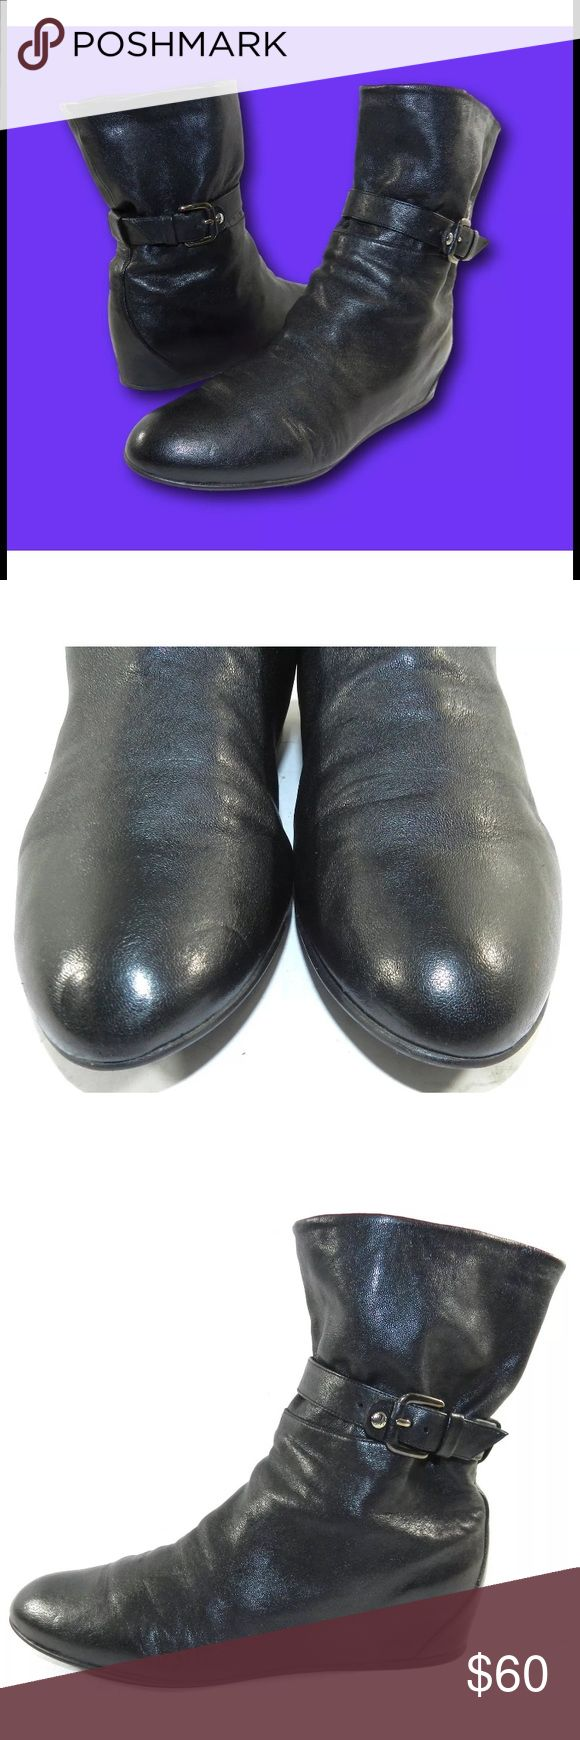 """STUART WEITZMAN Black Leather Wedge Ankle Boots Women's STUART WEITZMAN Black Leather Buckled Wedge Ankle Boots Booties      Classic black leather wedge ankle boots by Stuart Weitzman.   Sz 8.5 M.  Bottom of soles measure approx. 10 1/4"""" long and 3 1/4"""" wide at widest part.    9"""" shaft height.    Good pre-owned condition.  Signs of wear include some scuff/scratches and wear to soles.  Please see all photos for further indication of wear and condition. Stuart Weitzman Shoes Ankle Boots…"""